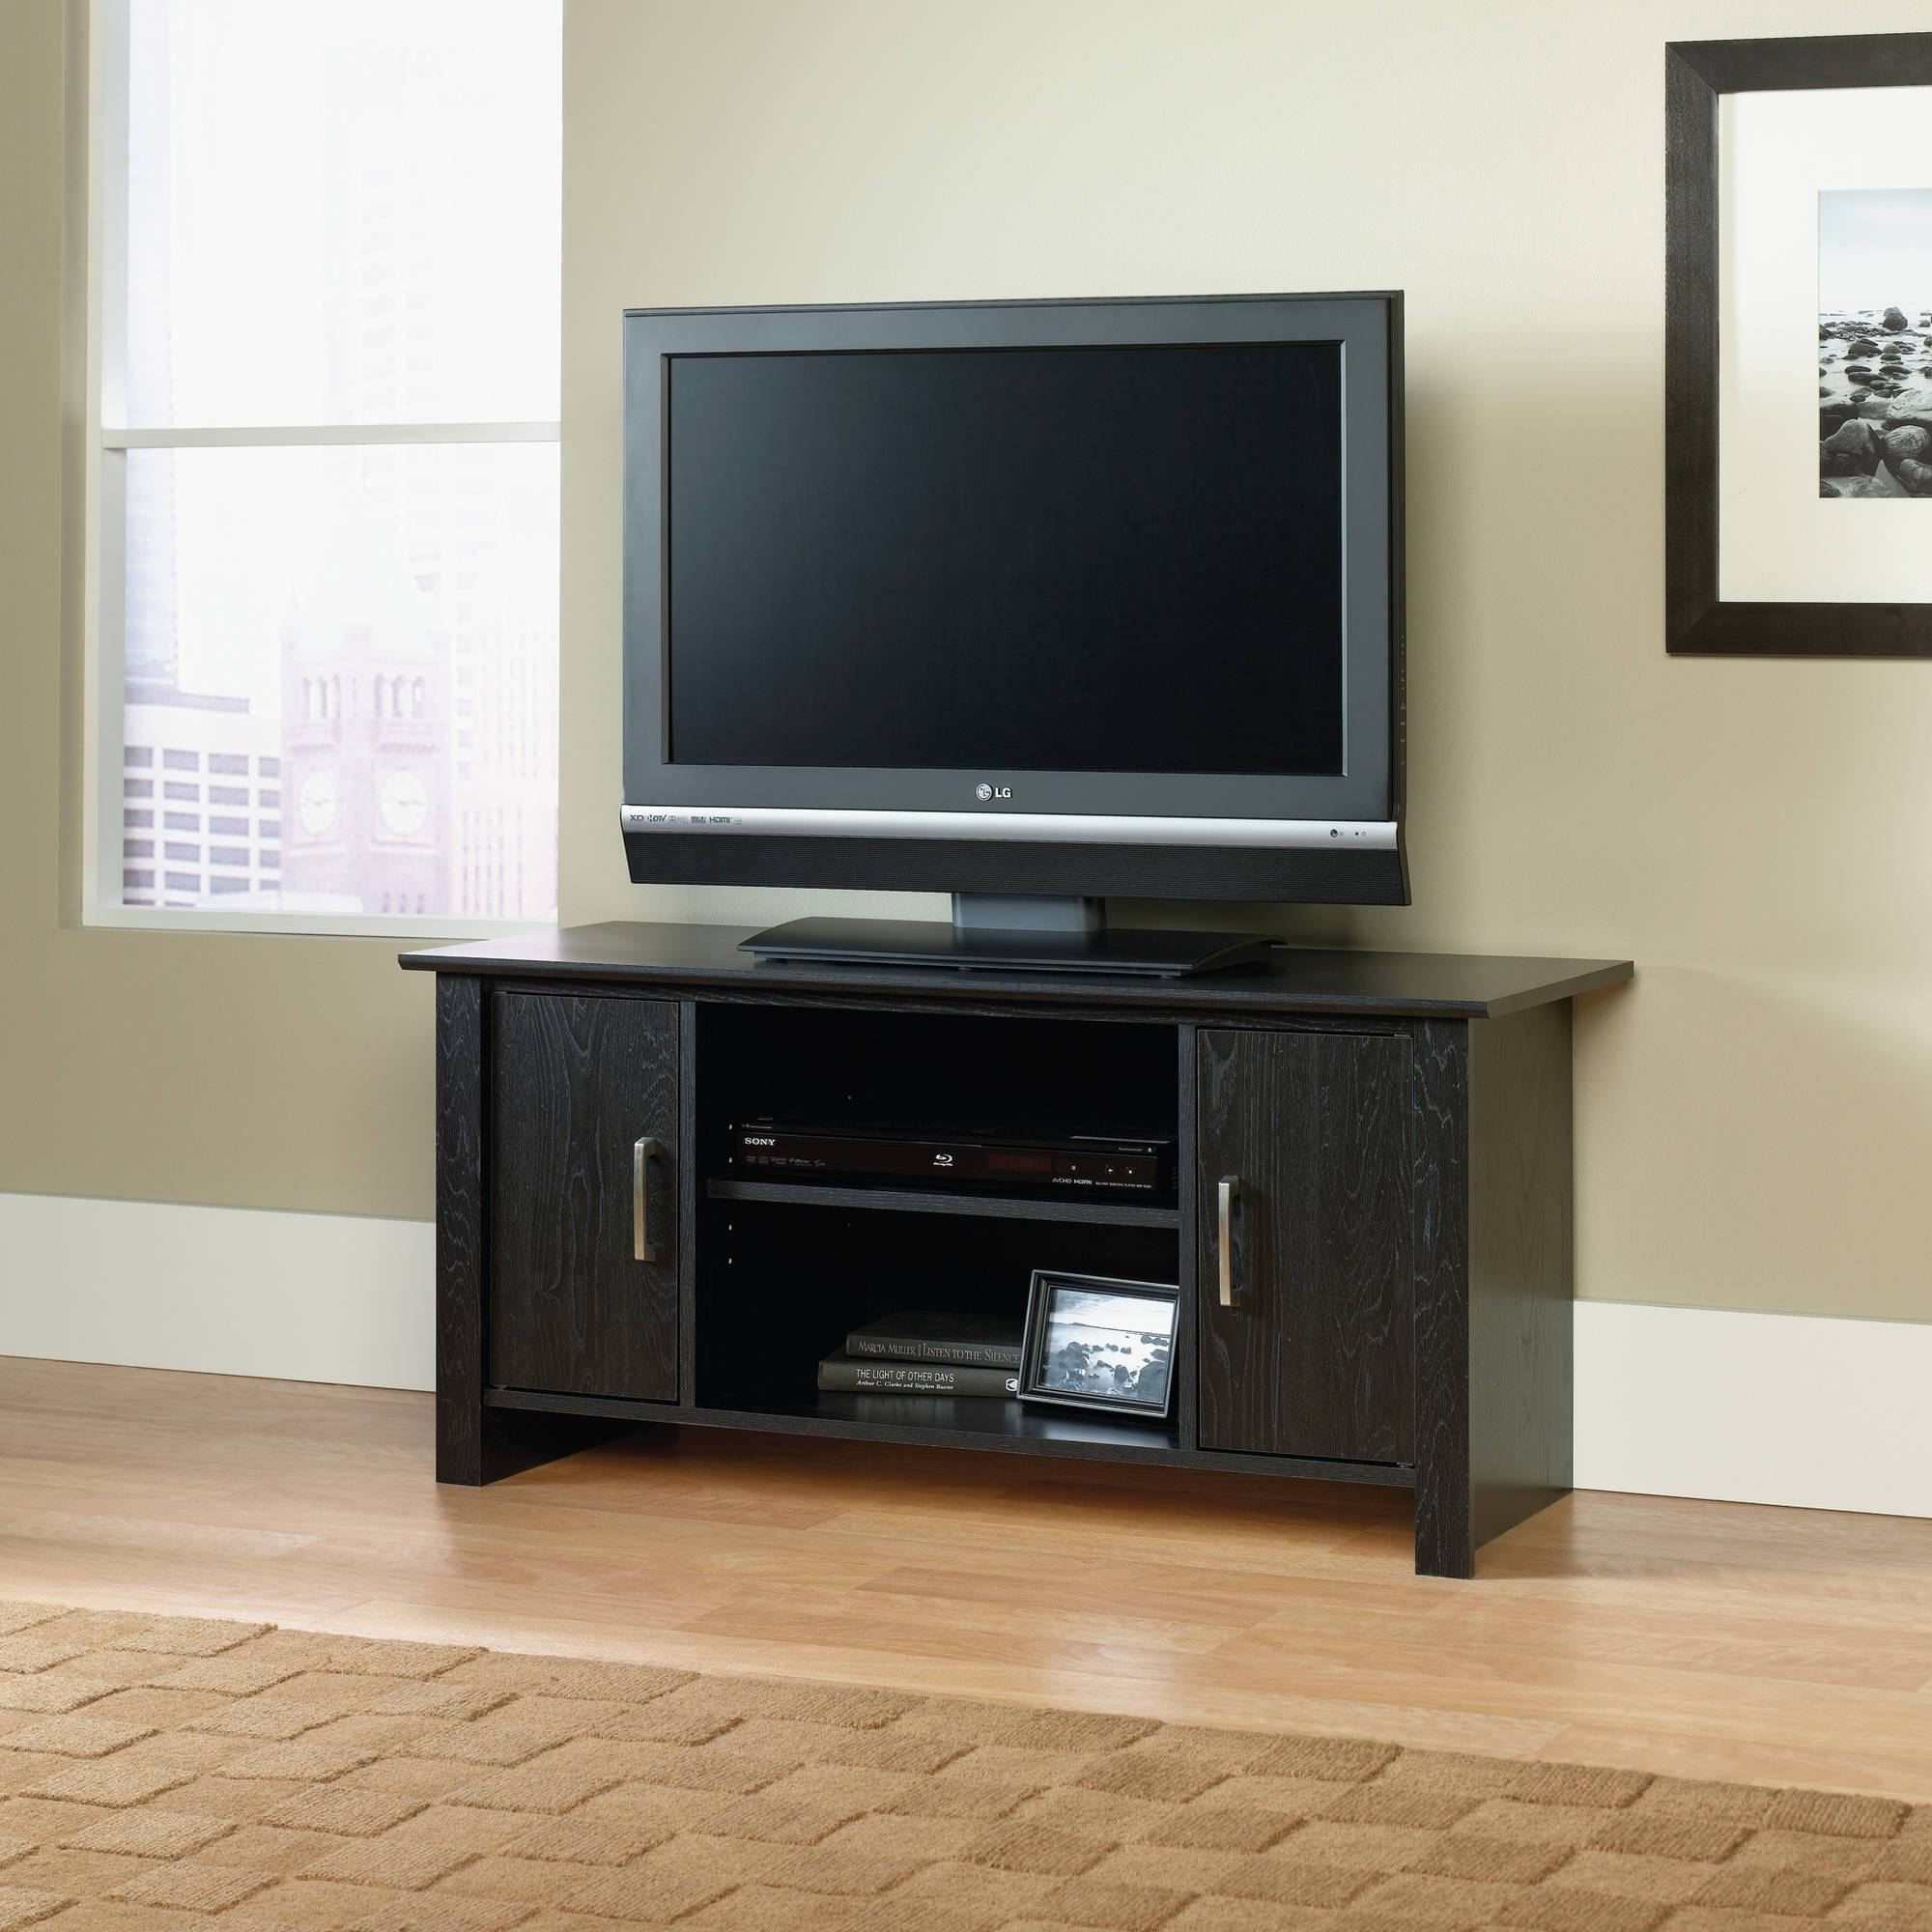 Tv Stands & Entertainment Centers - Walmart intended for Cheap Wood Tv Stands (Image 11 of 15)